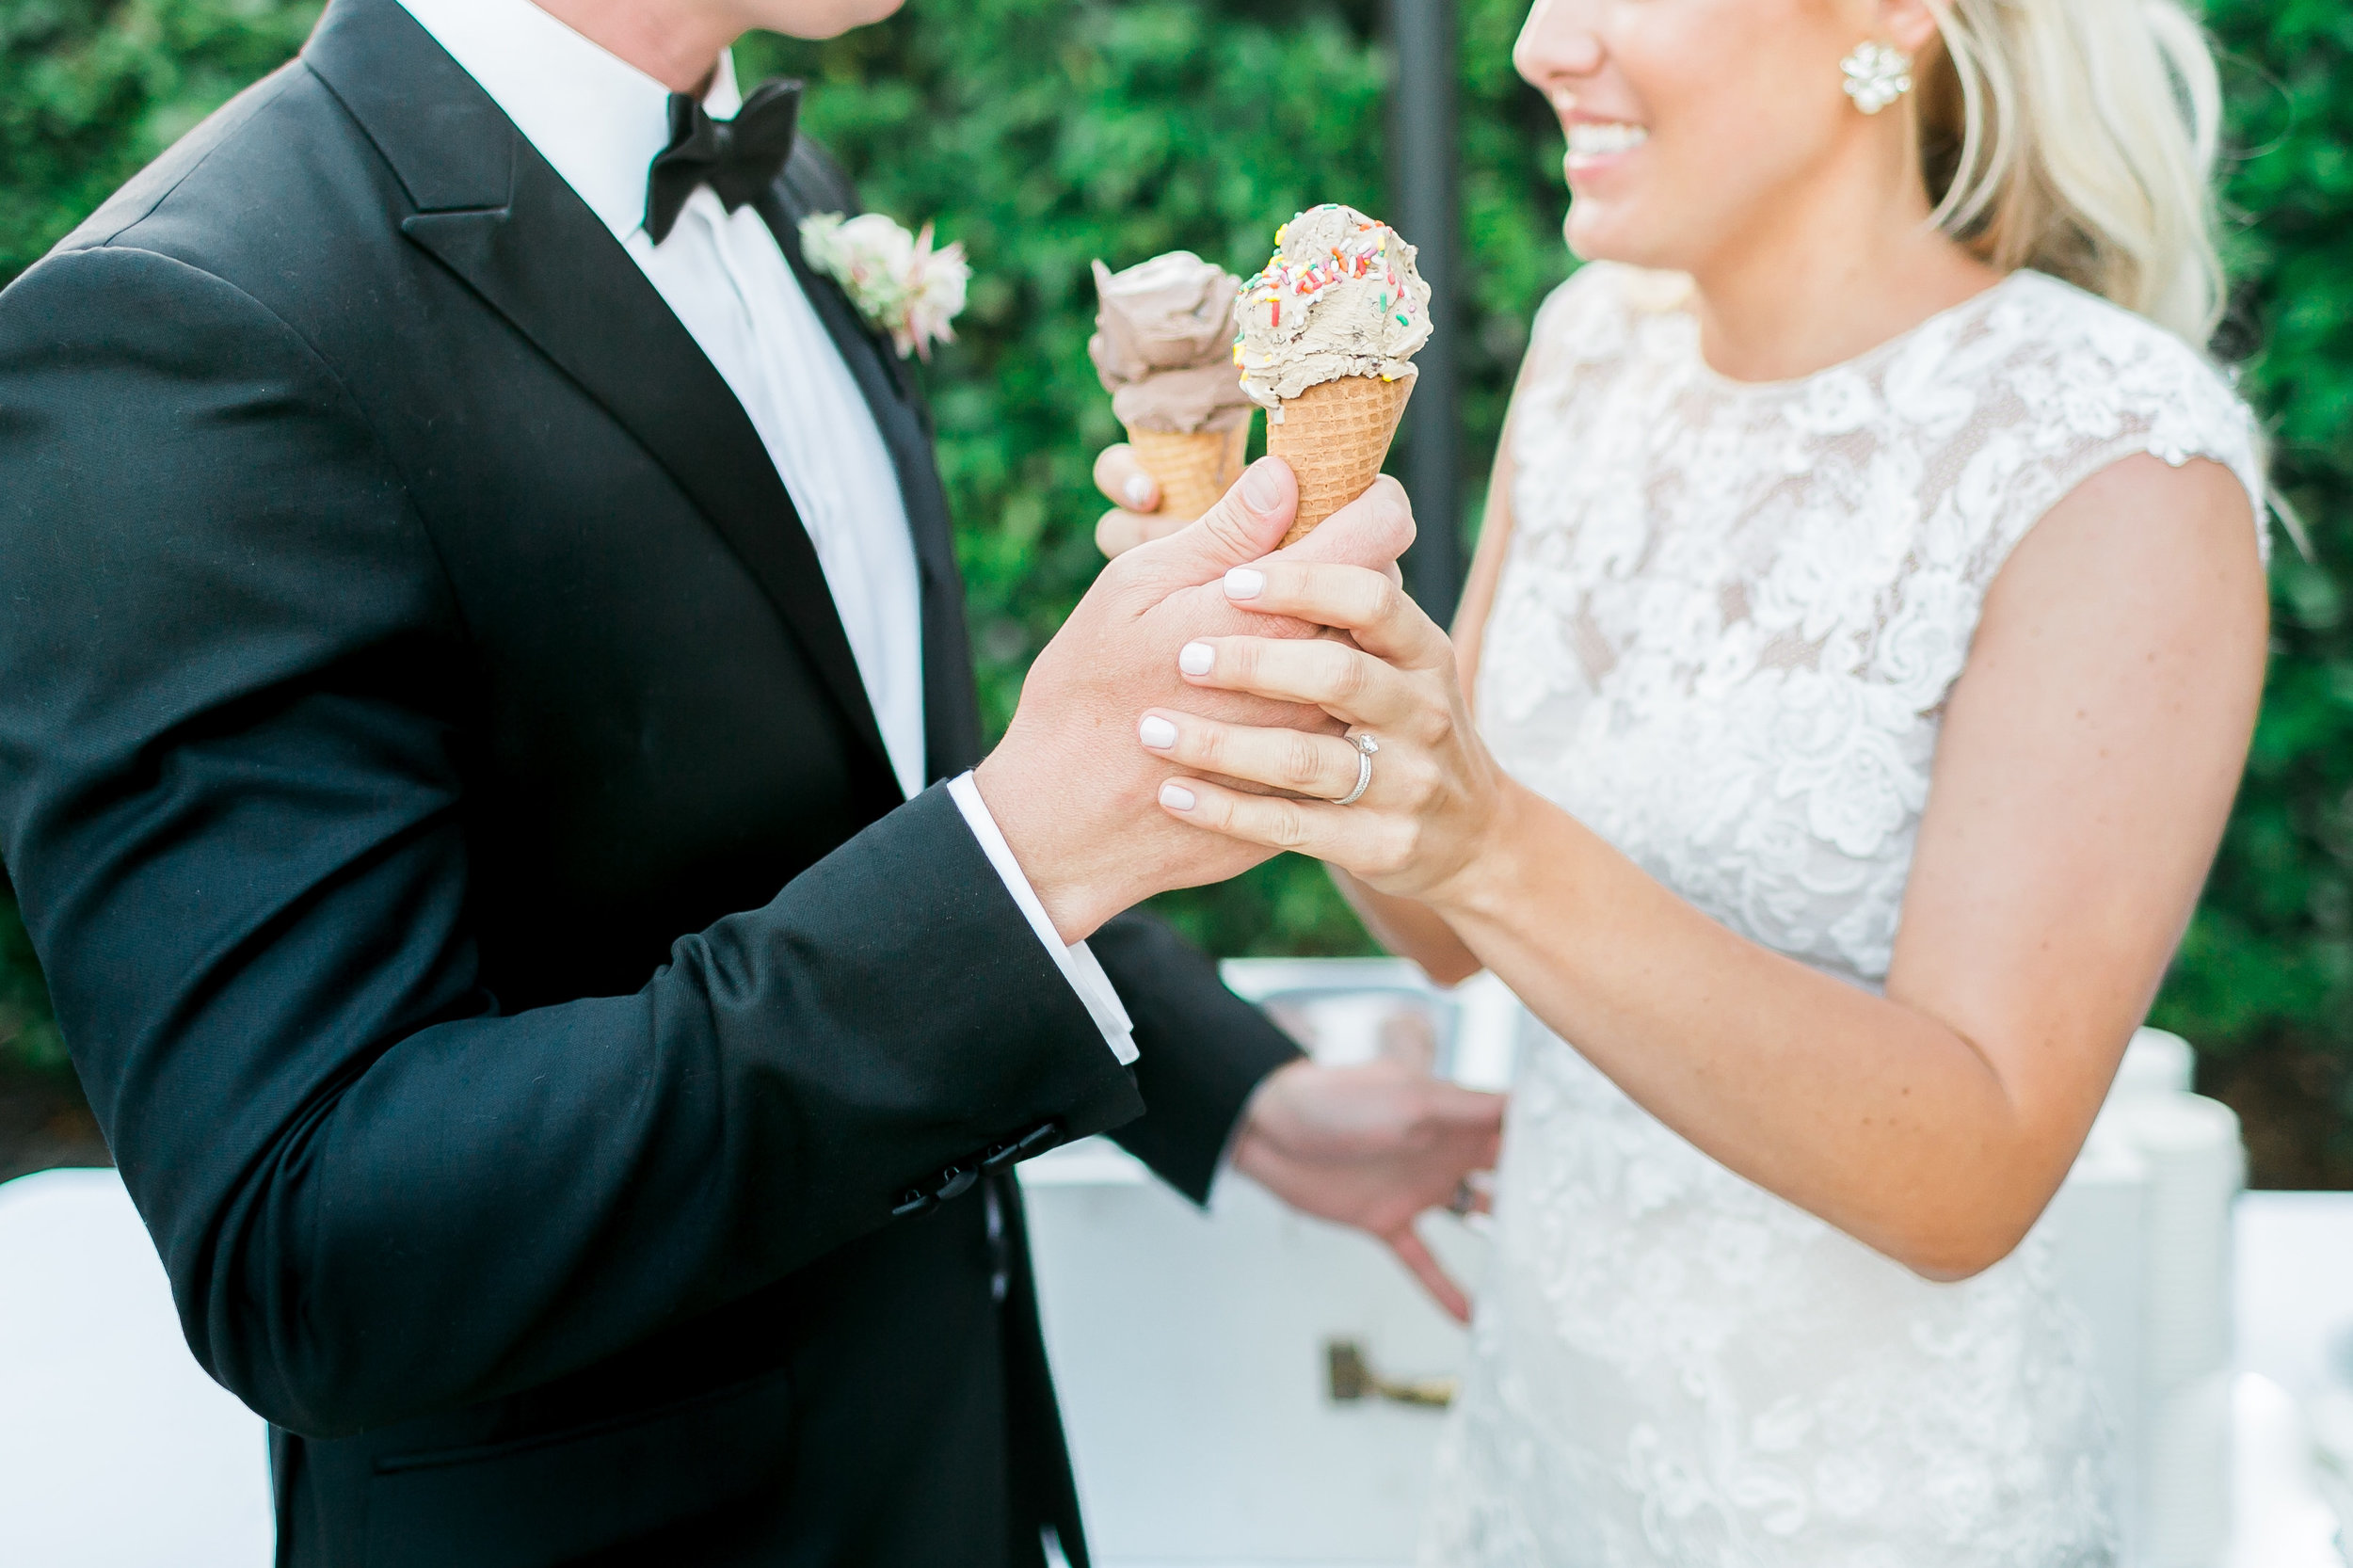 Ice cream cones instead of wedding cake.   Destination Wedding Planner  ANDREA EPPOLITO EVENTS  · Images by  J.ANNE P  HOTOOGRAPHY  · Video  HOO FILMS  · Venue Ritz Carlton Bacara Santa Barbara ·Gown MONIQUE LHULLIER ·Bridesmaids Dresses  SHOW ME YOUR MUMU ·Stationery  SHE PAPERIE ·Bride's Shoes  BADGLEY MISCHKA ·Hair and Makeup  TEAM HAIR AND MAKEUP · Floral  BLUE MAGNOLIA ·Linen  LA TAVOLA ·Decor Rentals  TENT MERCHANT ·Calligraphy  EBB ·Lighting  FIVE STAR AV ·Ice Cream Station  MCCONNELL'S ICE CREAM